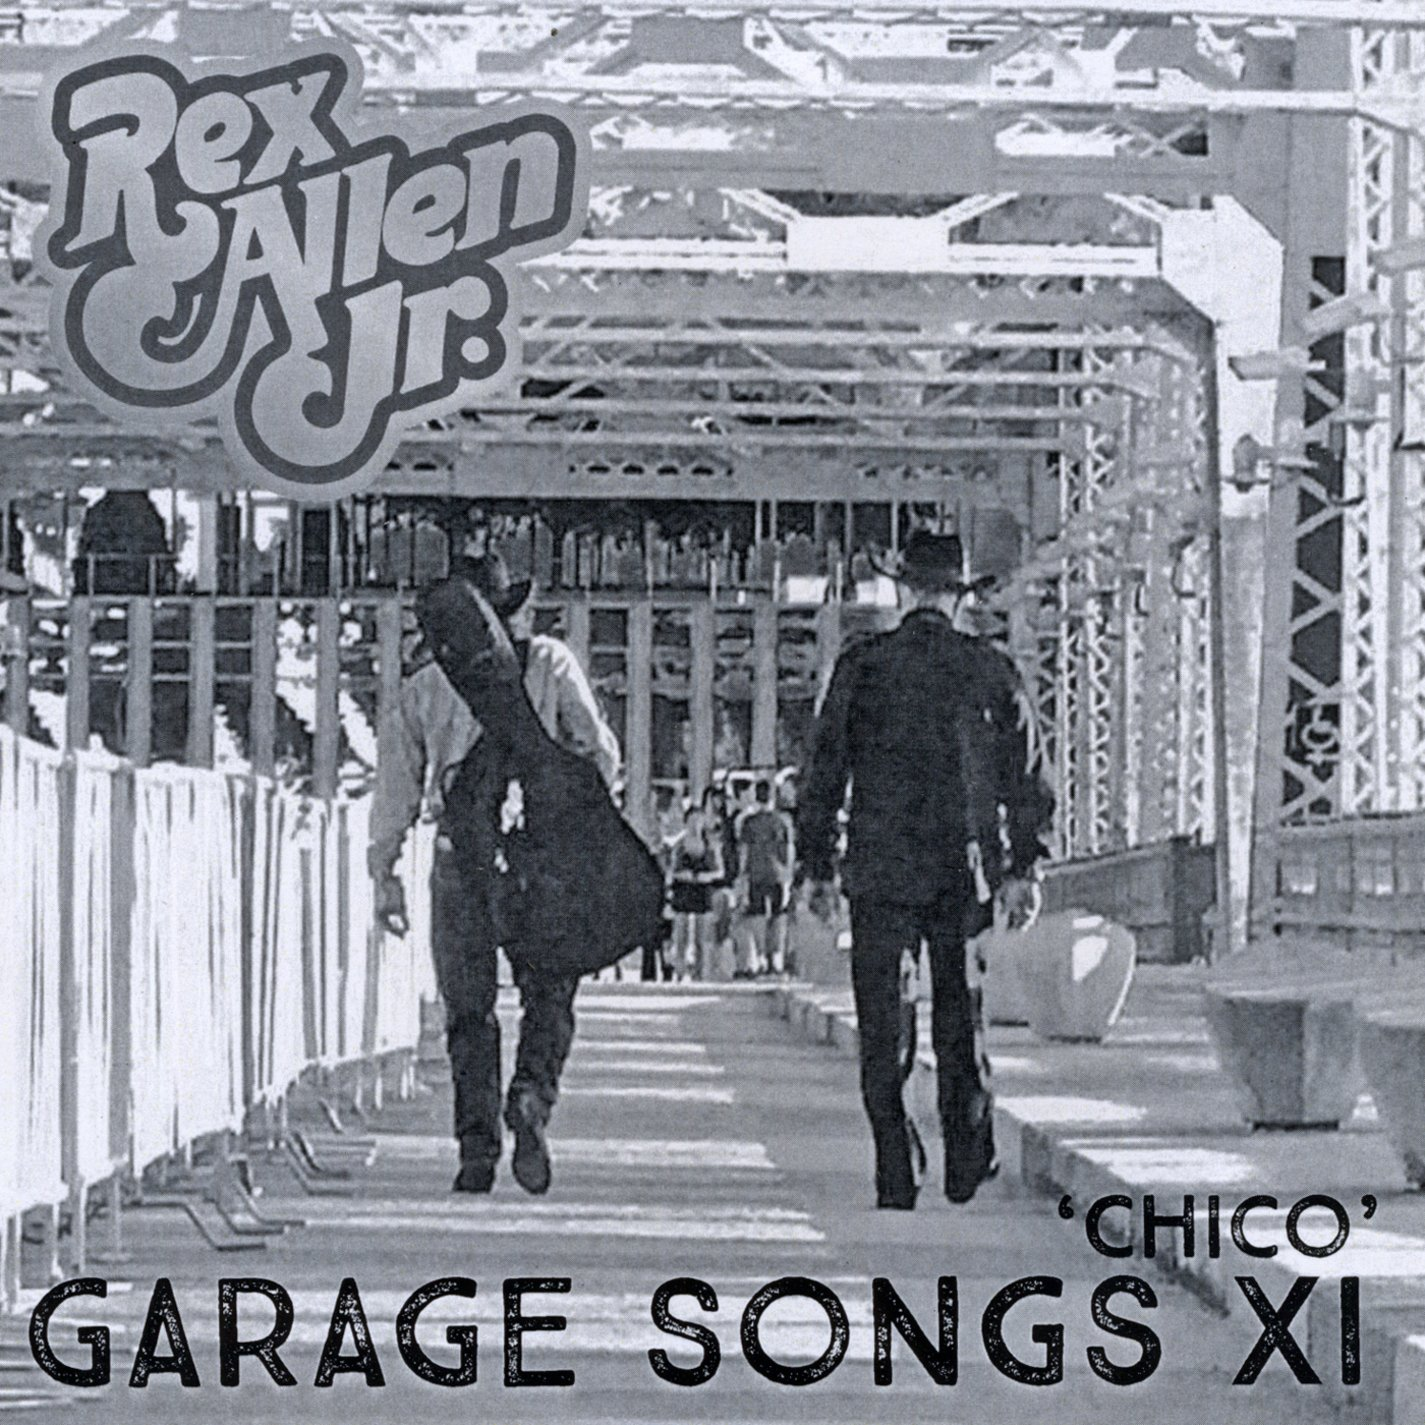 Garage Songs Xichico: Rex Allen Jr: Amazon.es: Música